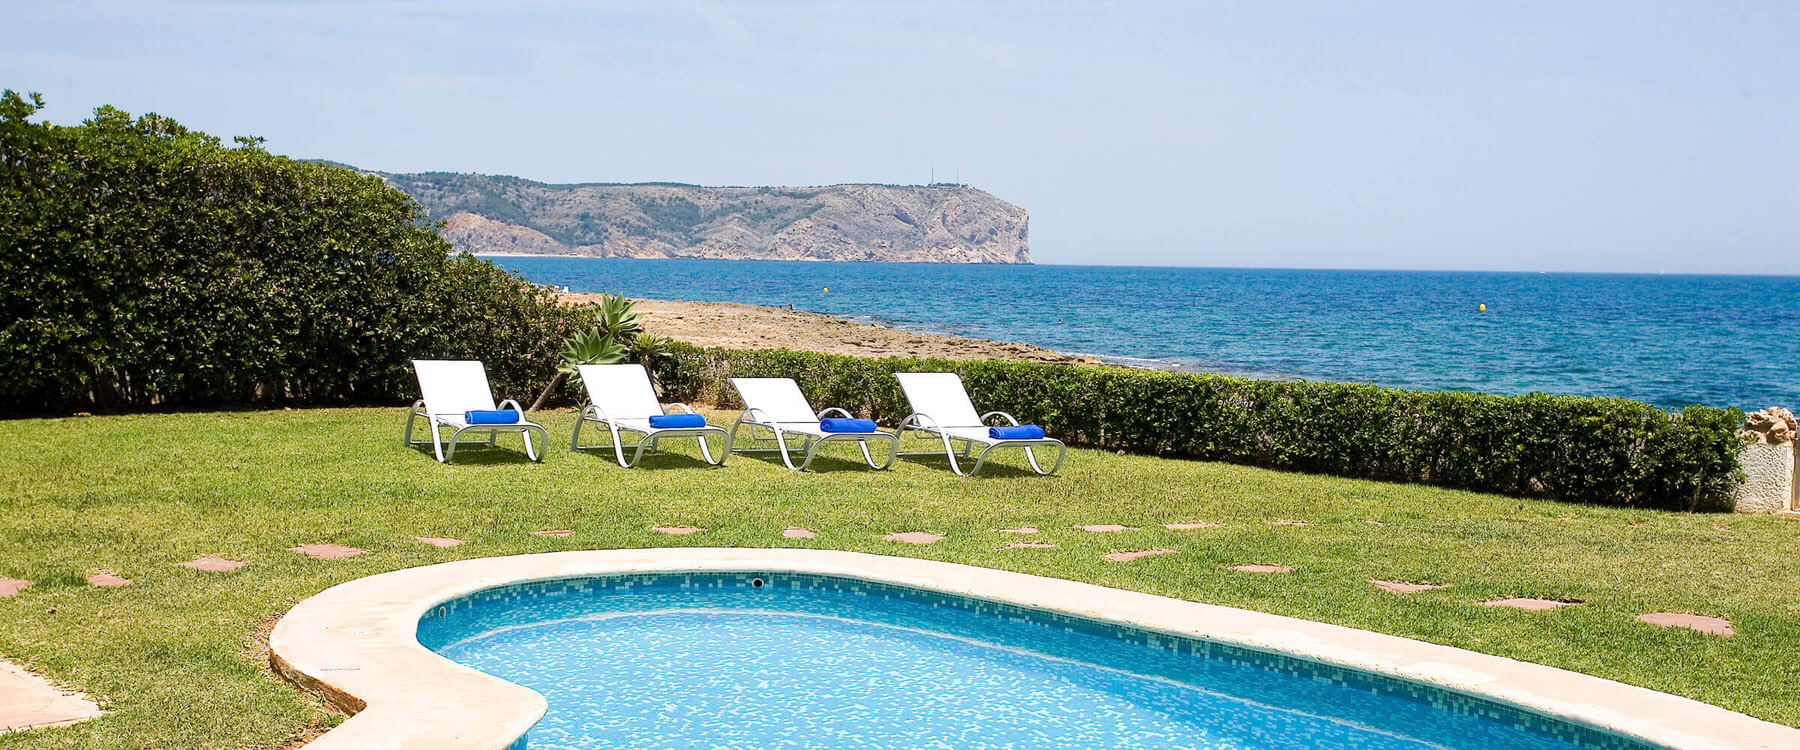 We have holiday homes with direct access to the beach and seaview.